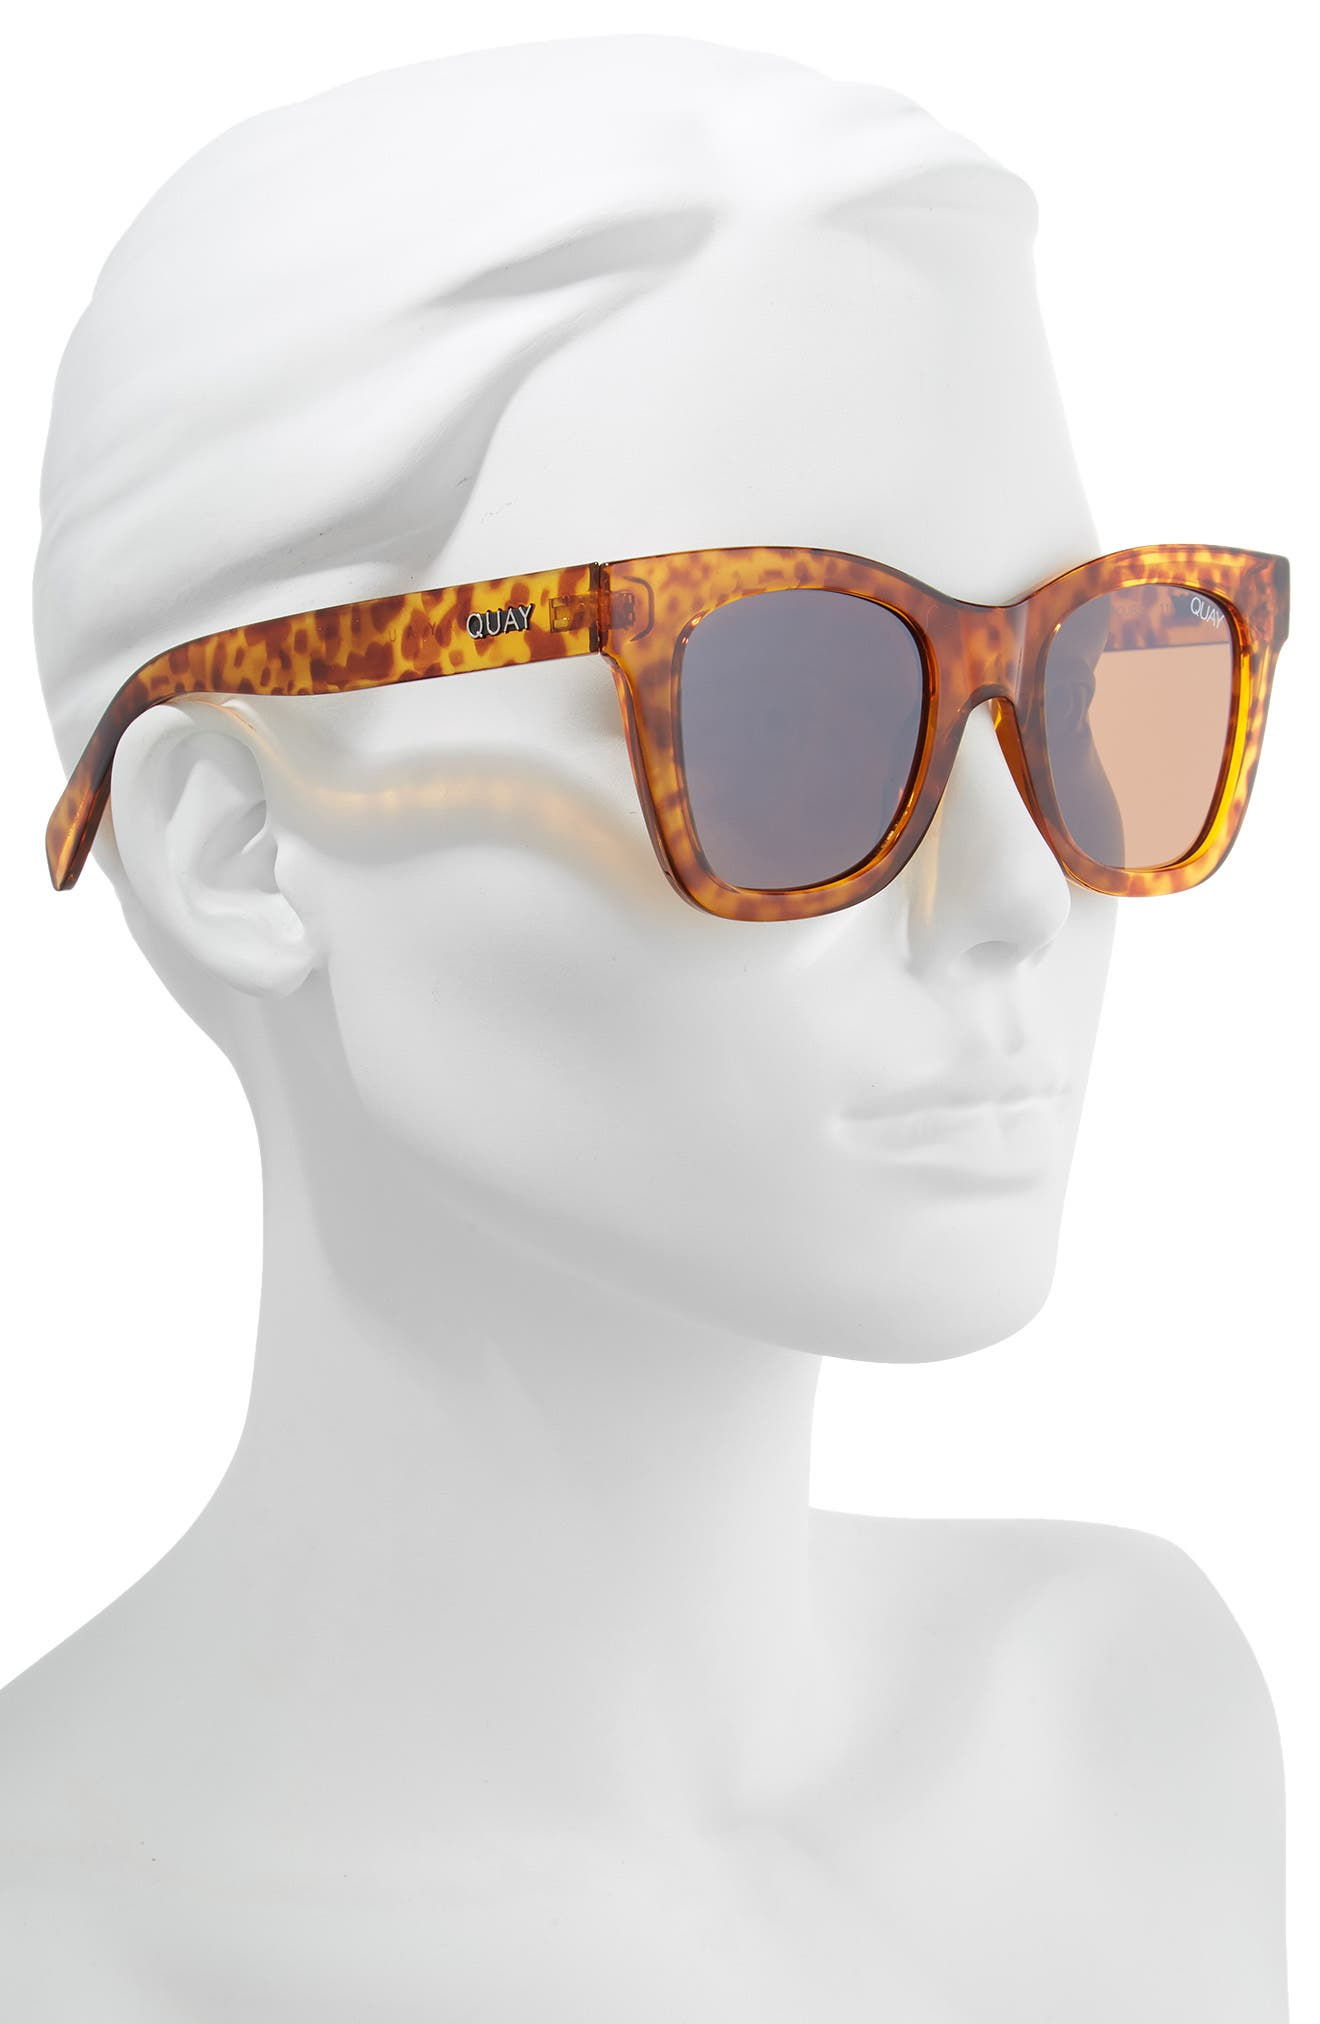 QUAY AUSTRALIA,                             After Hours 50mm Square Sunglasses,                             Alternate thumbnail 2, color,                             ORANGE TORT / BROWN